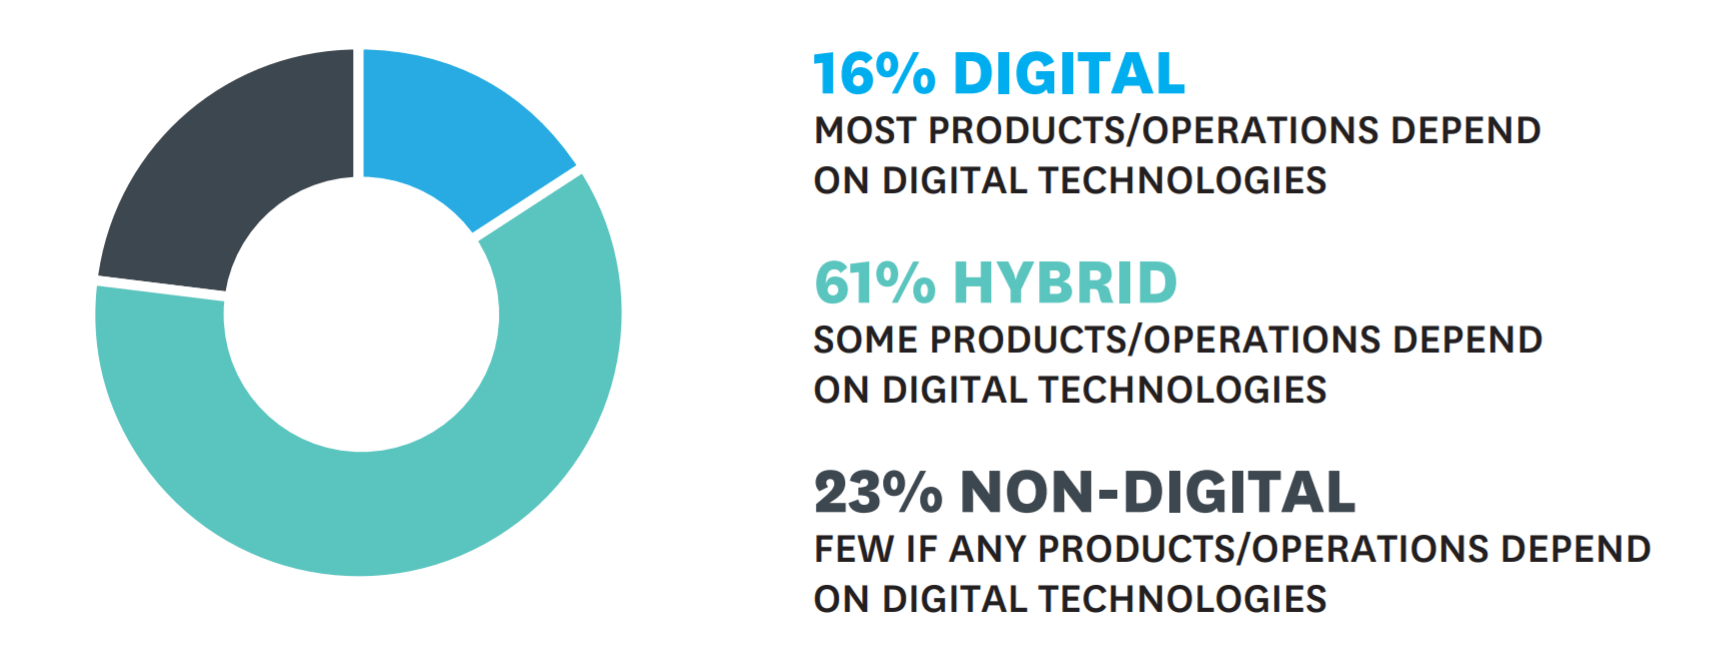 Percentage of companies dependent on digital technologies